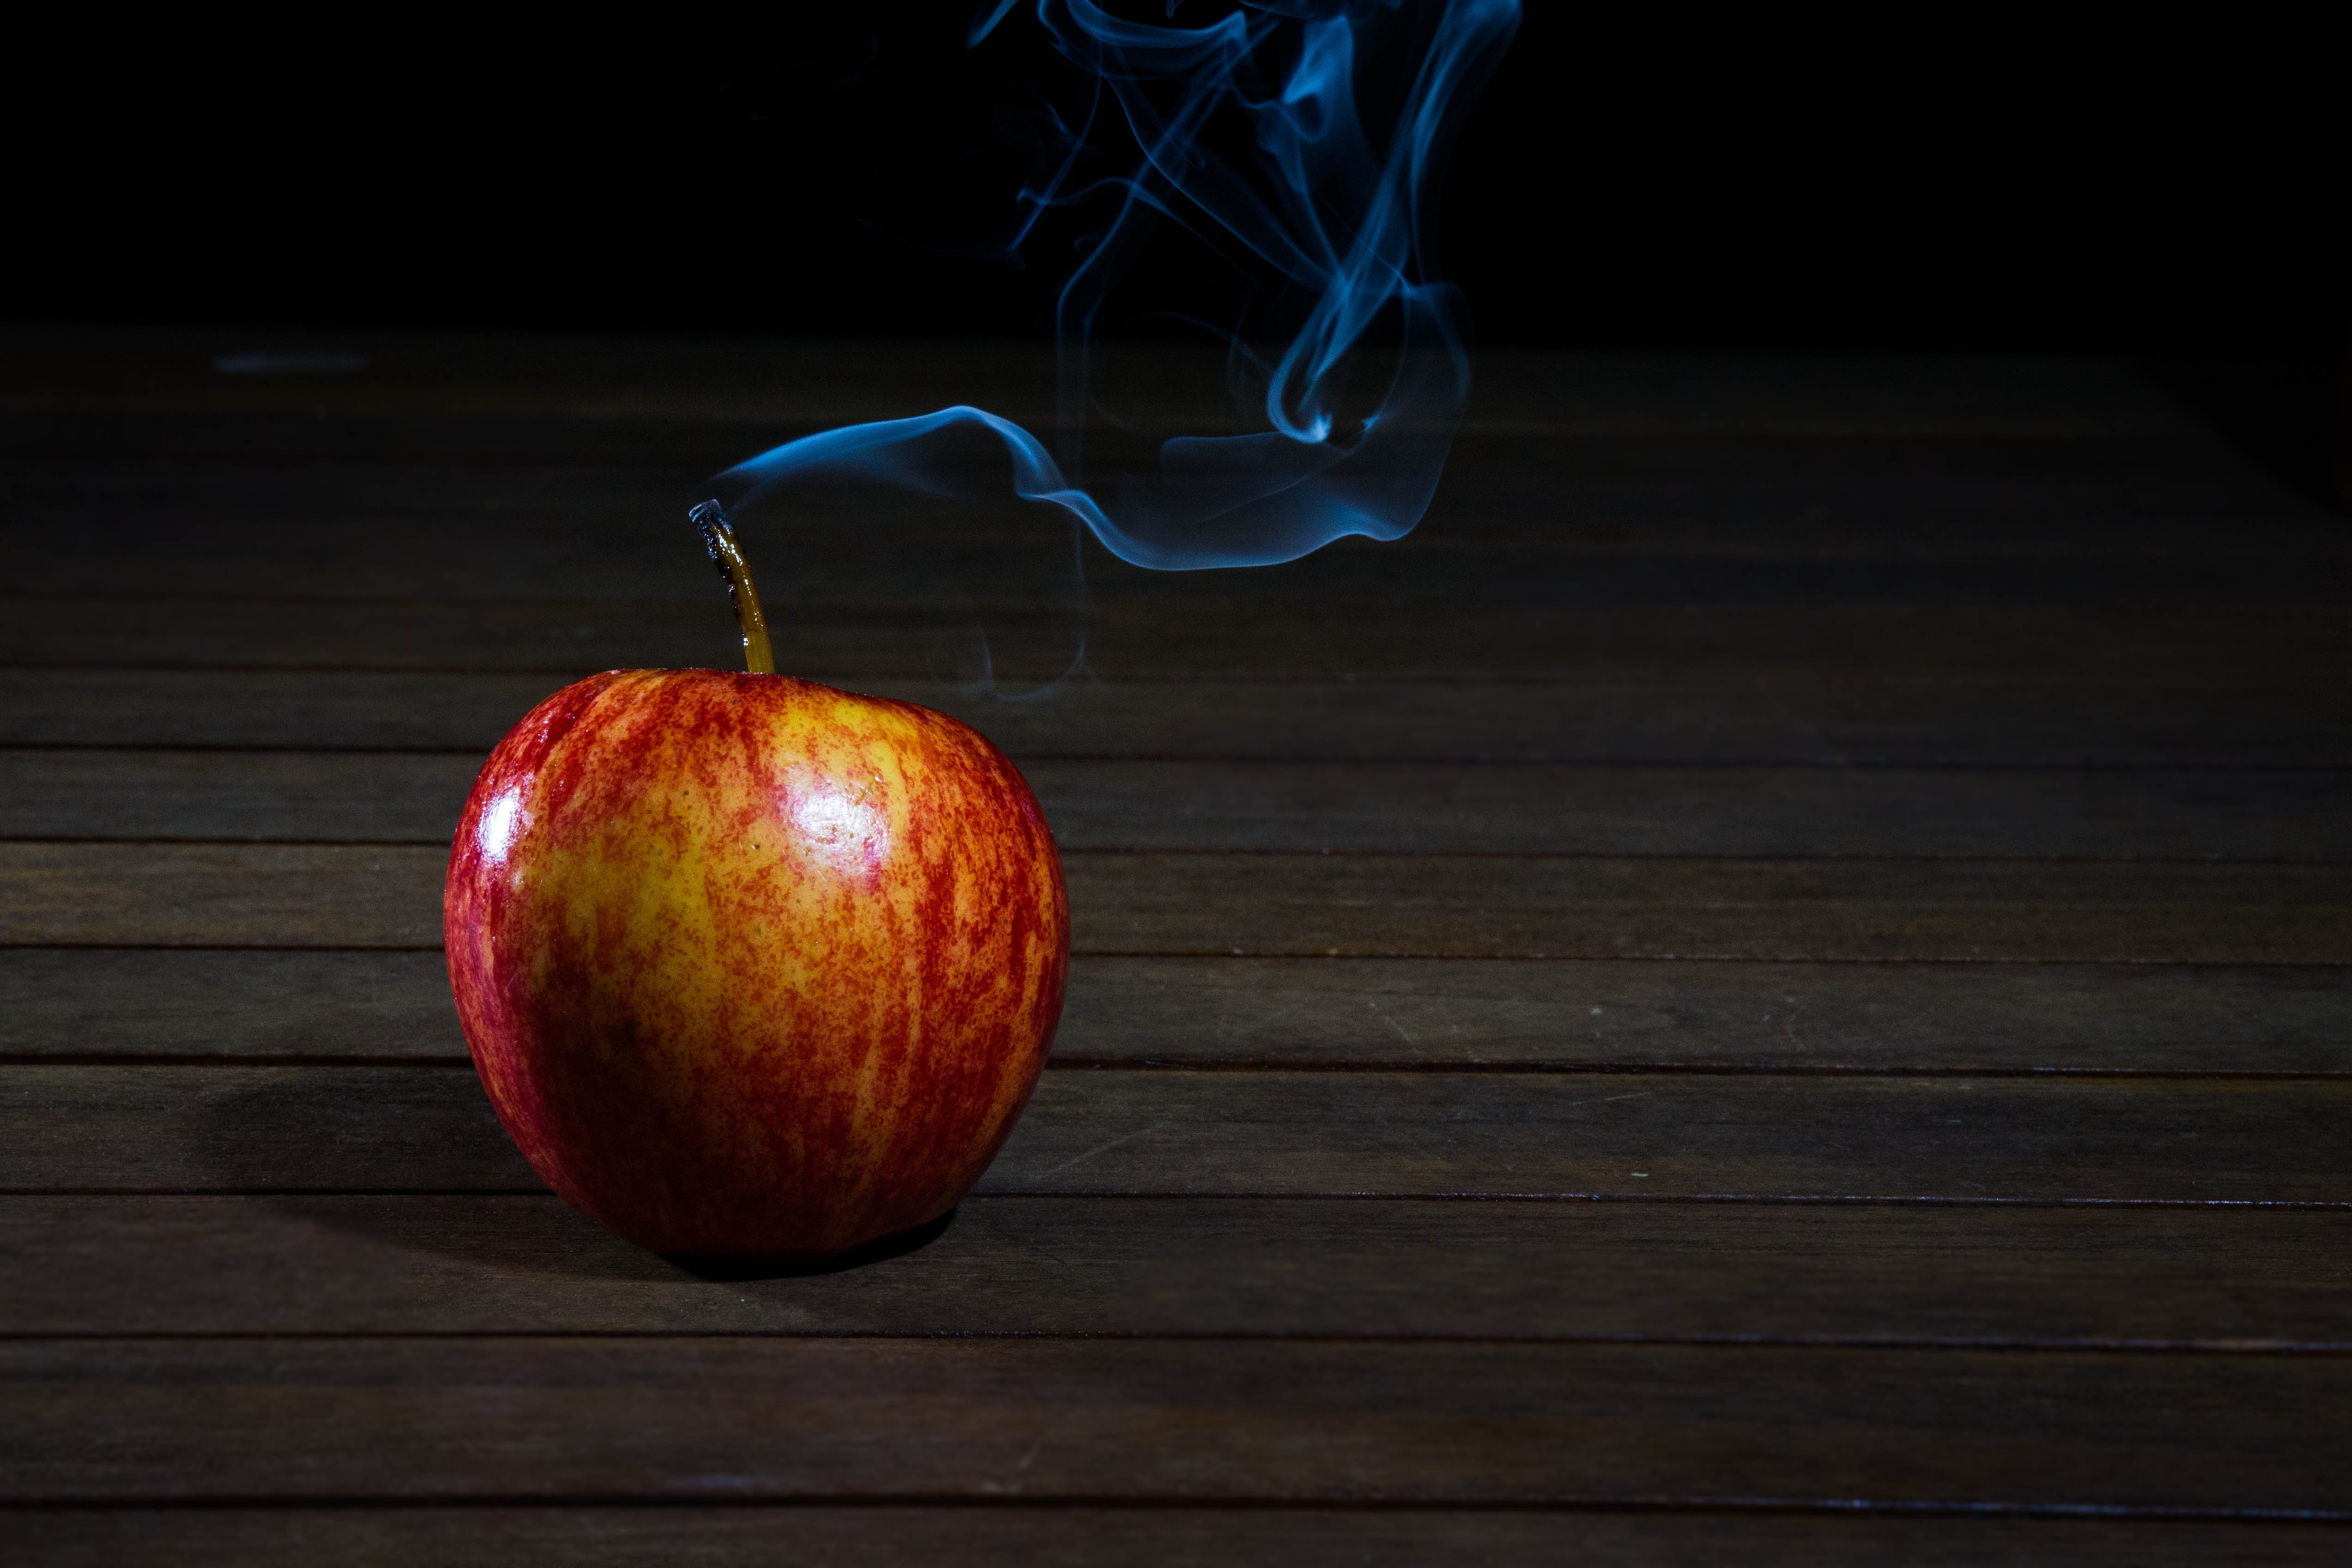 Red Apple With Smoke Coming from Stalk on Wooden Floor